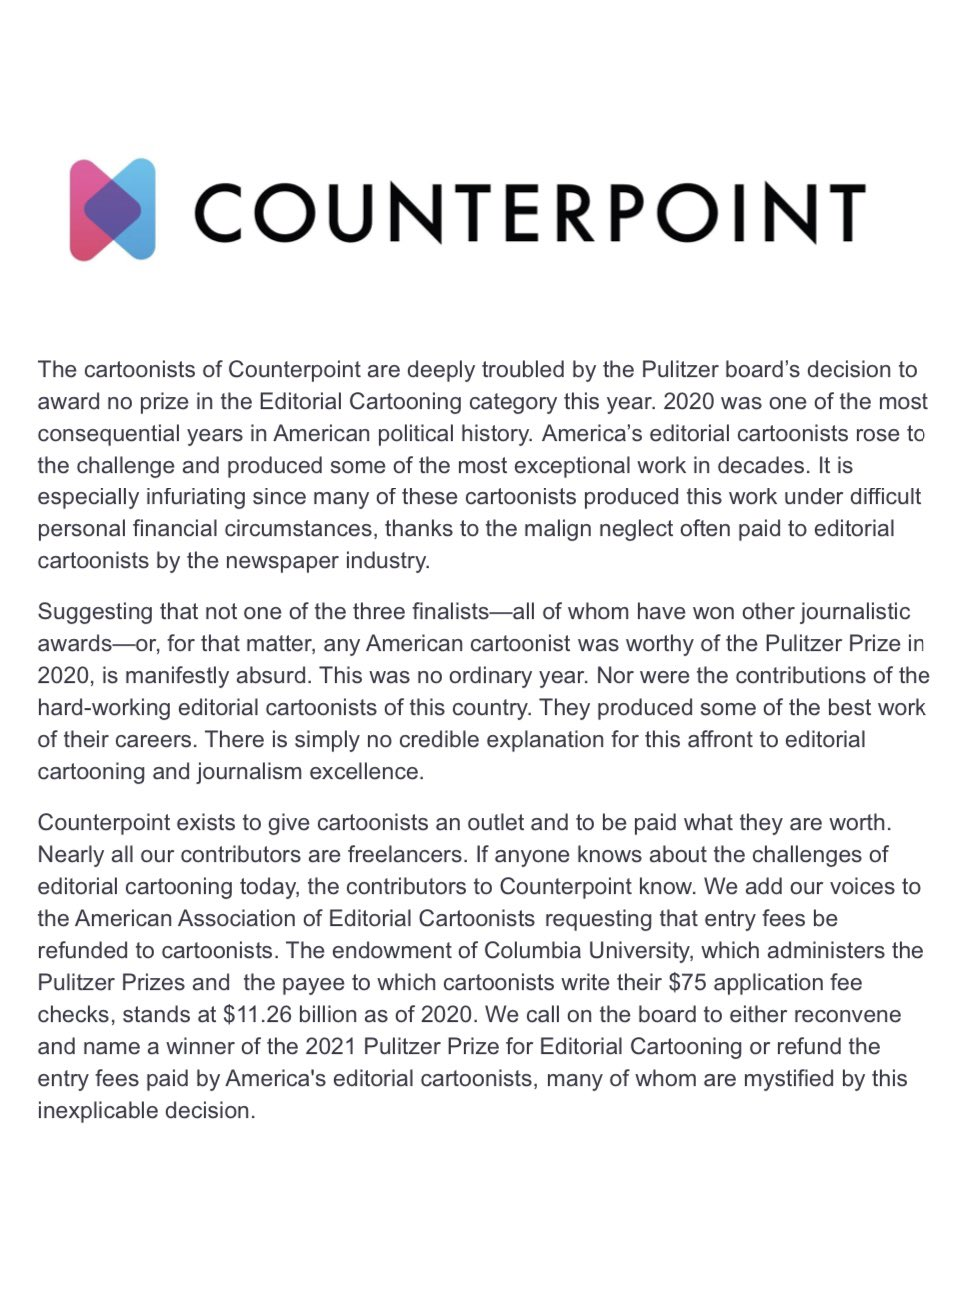 CP Counterpoint